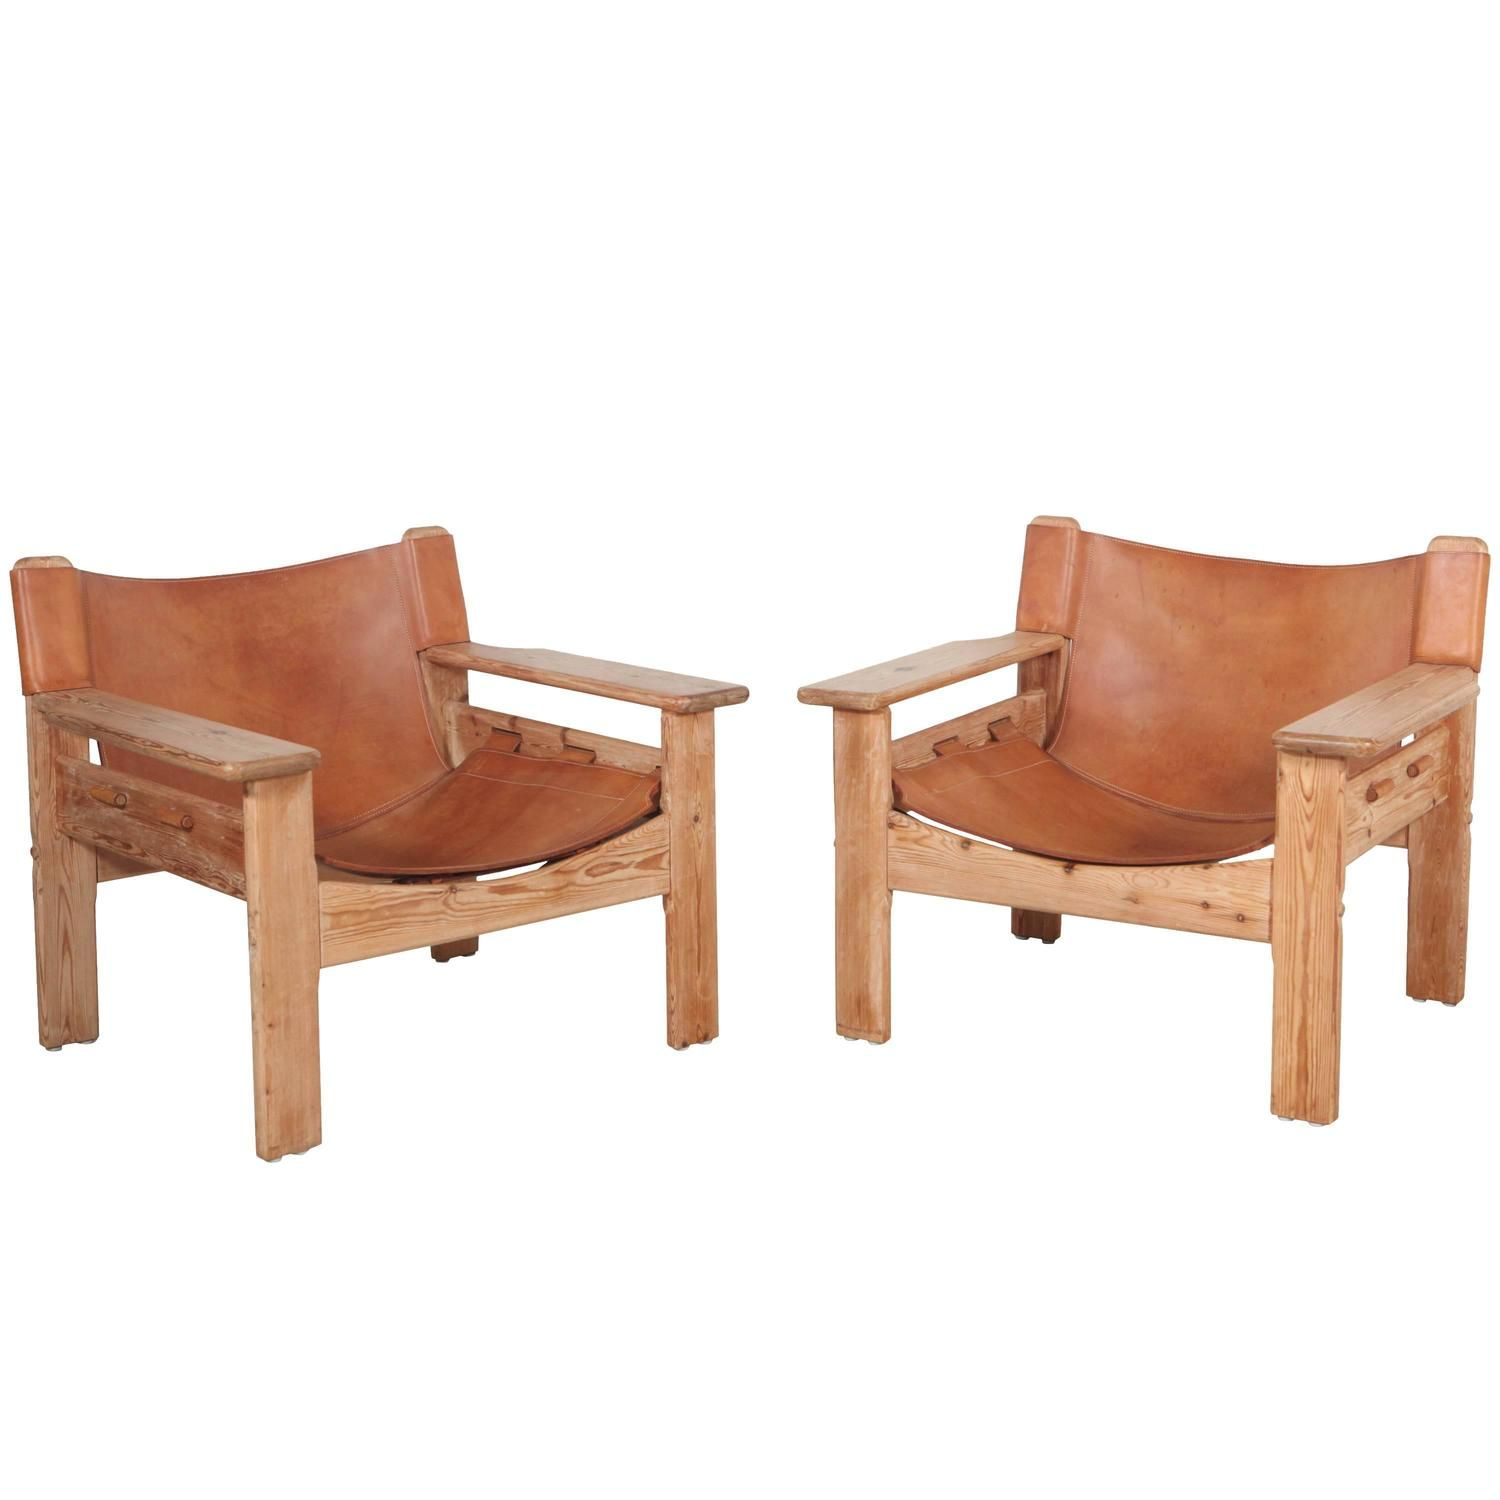 Pair of Wide Arm Bernt Petersen Leather and Oak Lounge Chairs is part of Chair - View this item and discover similar lounge chairs for sale at 1stdibs  Beautiful Danish sling chairs by Bernt Petersen in the style of Borge Mogensen